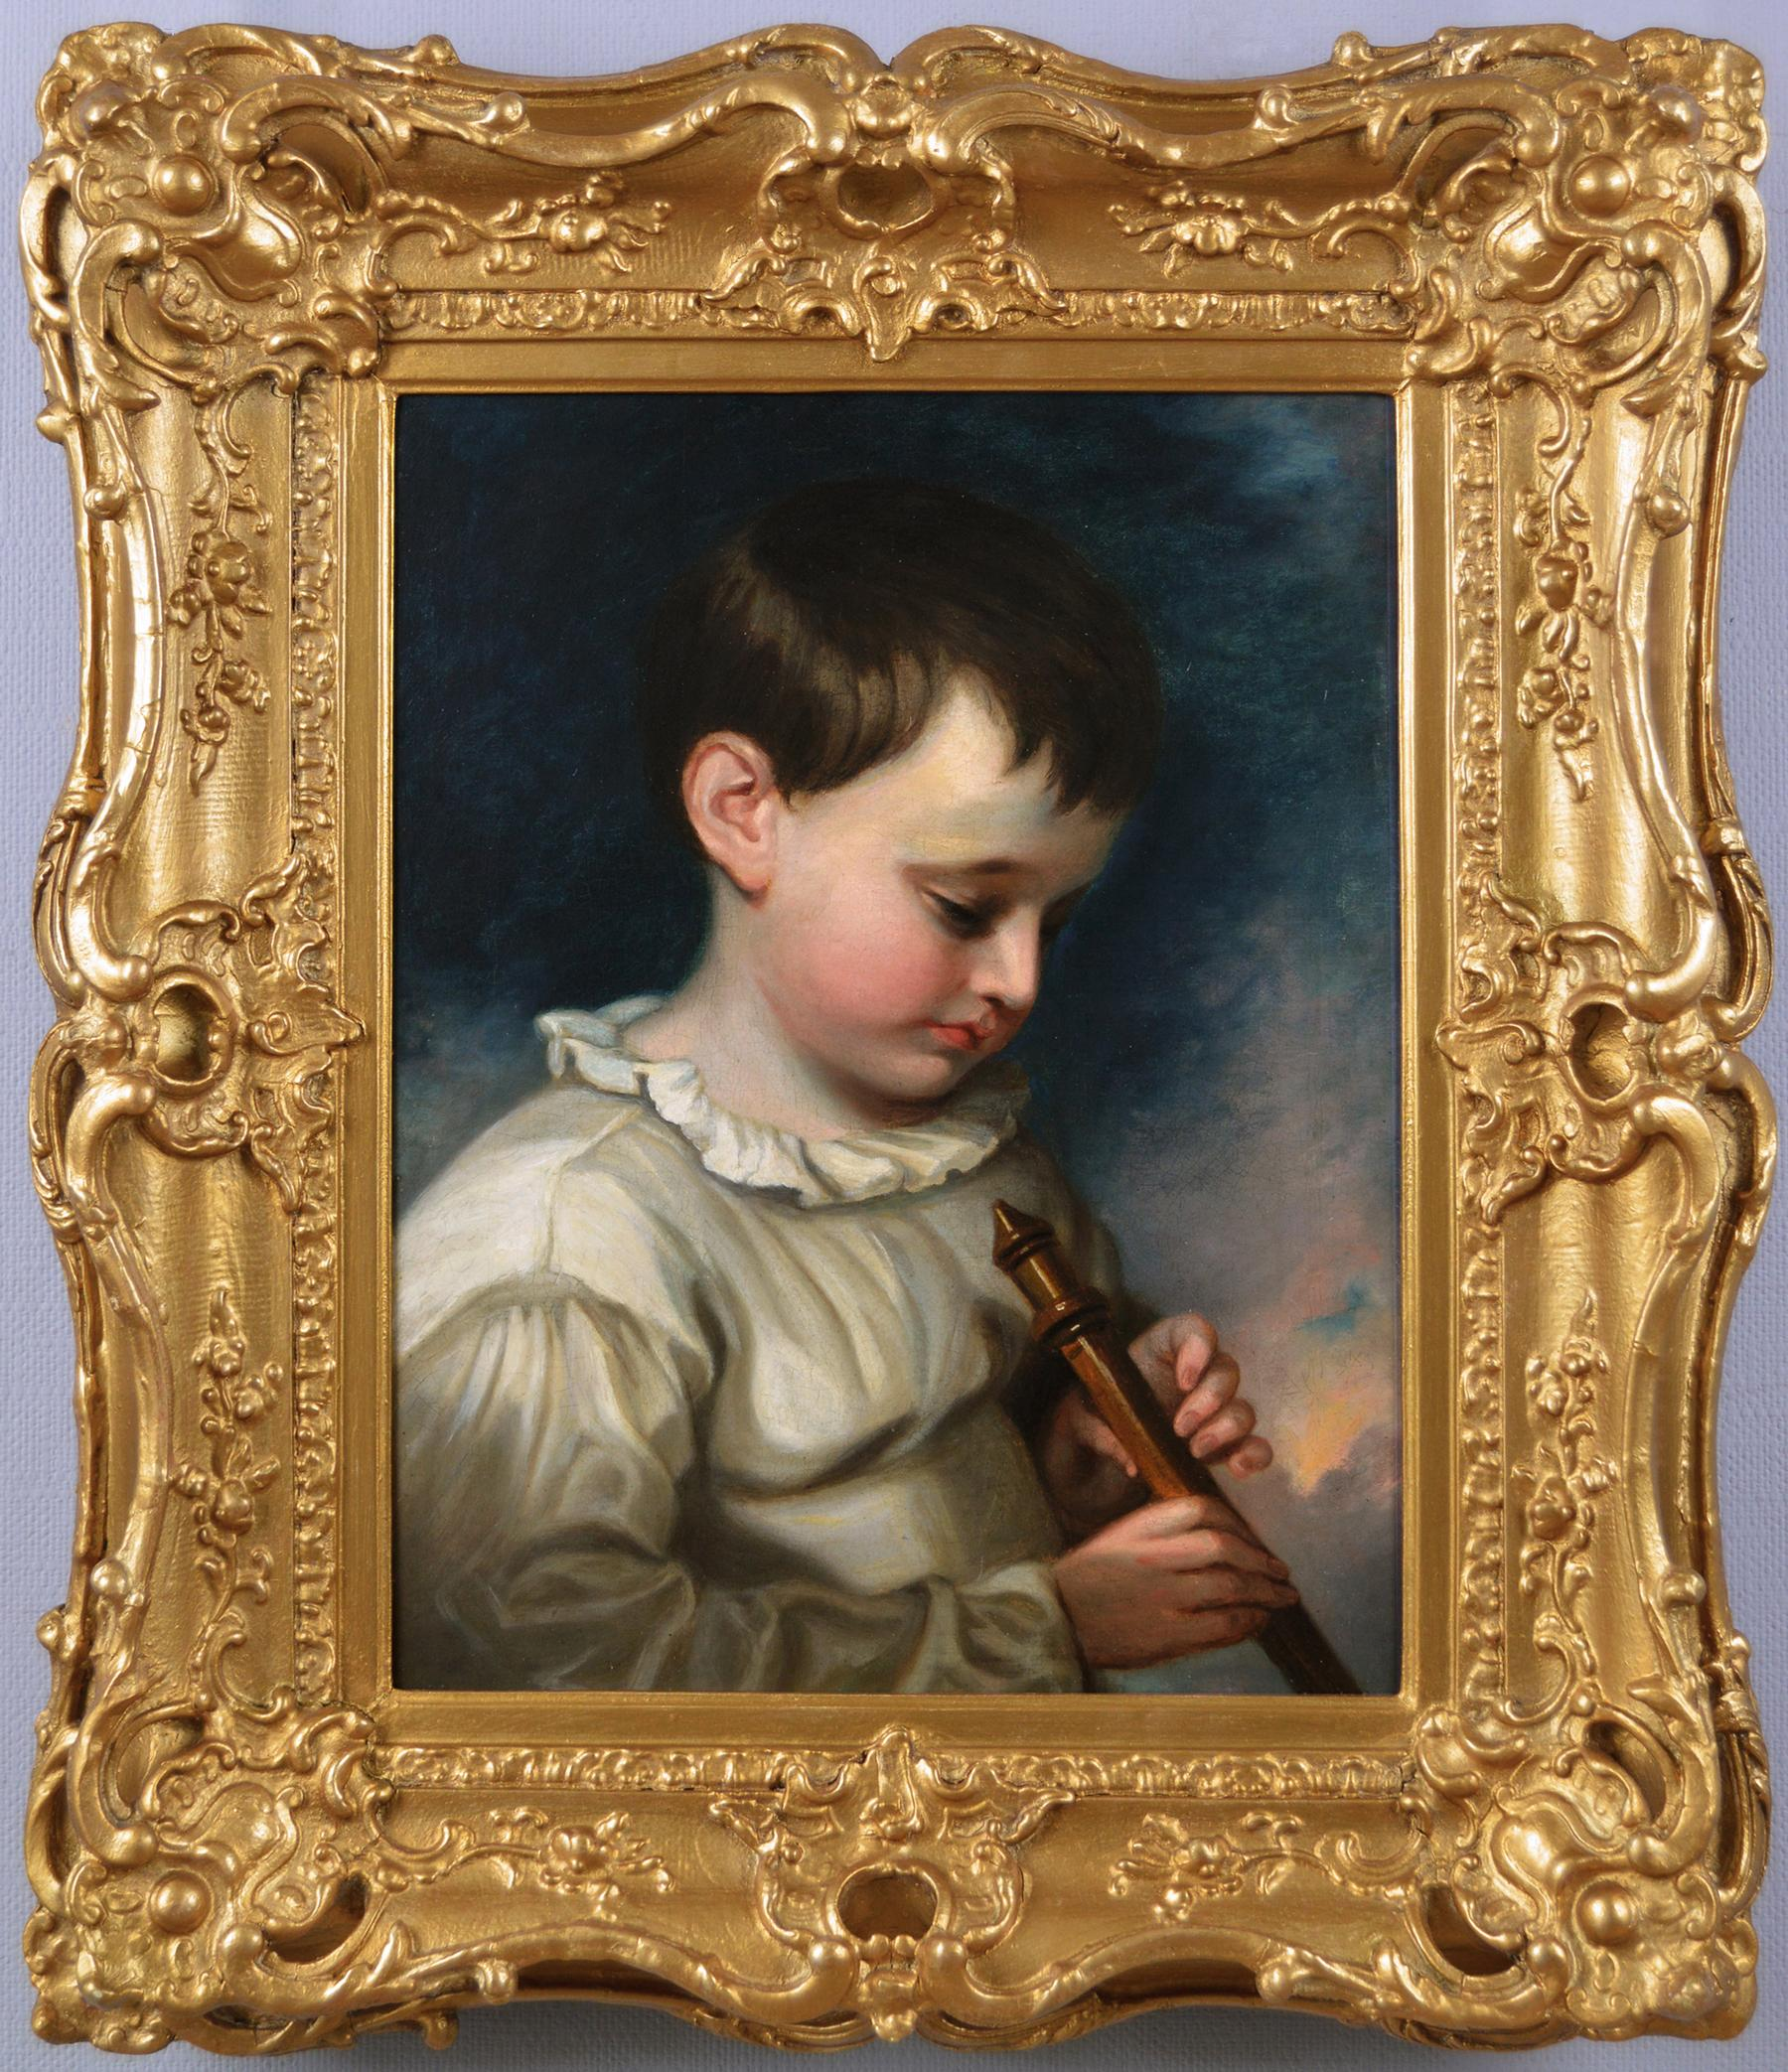 Early 19th Century genre oil painting of a boy playing a flute